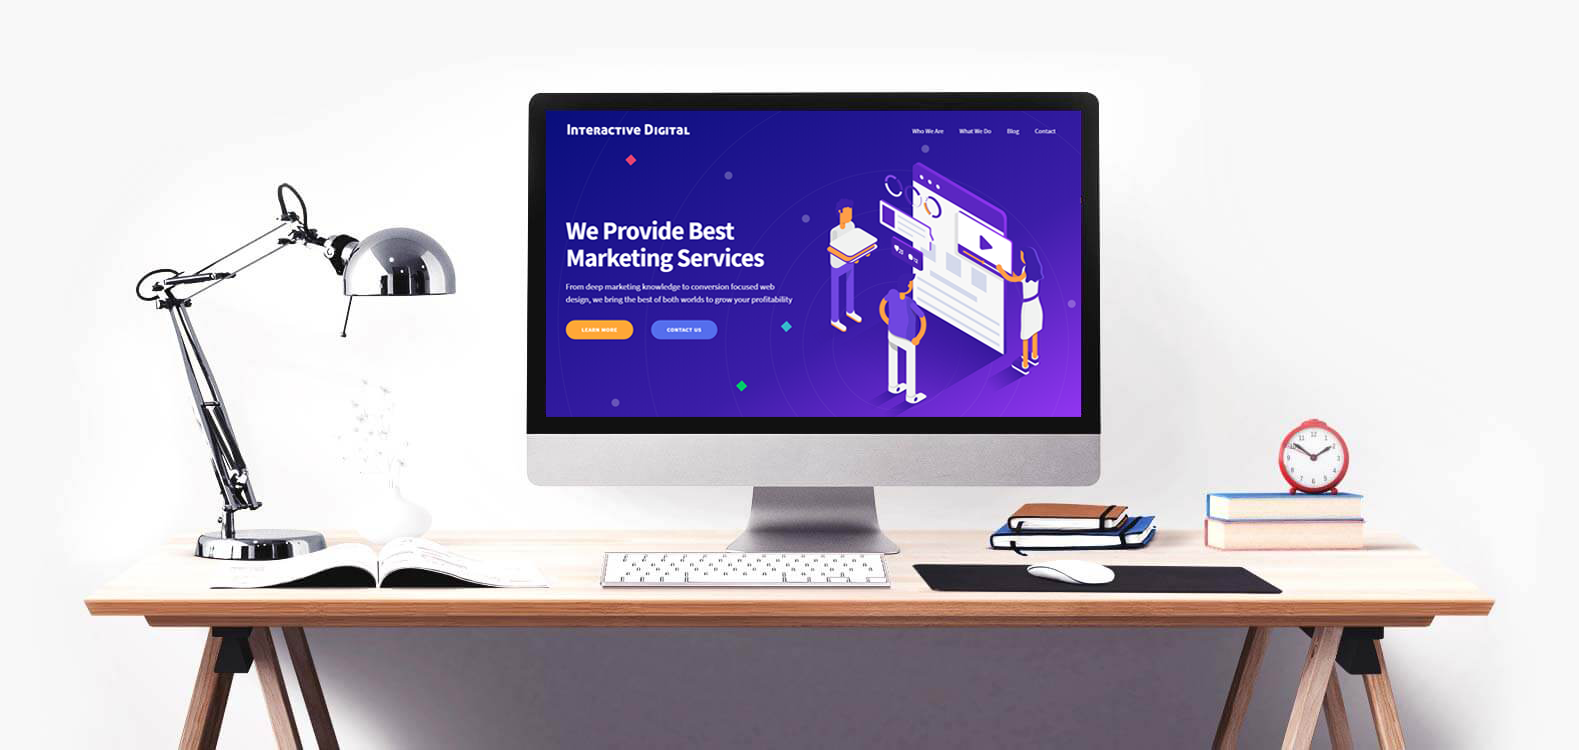 Interactive Digital | Web Design & Digital Marketing Company